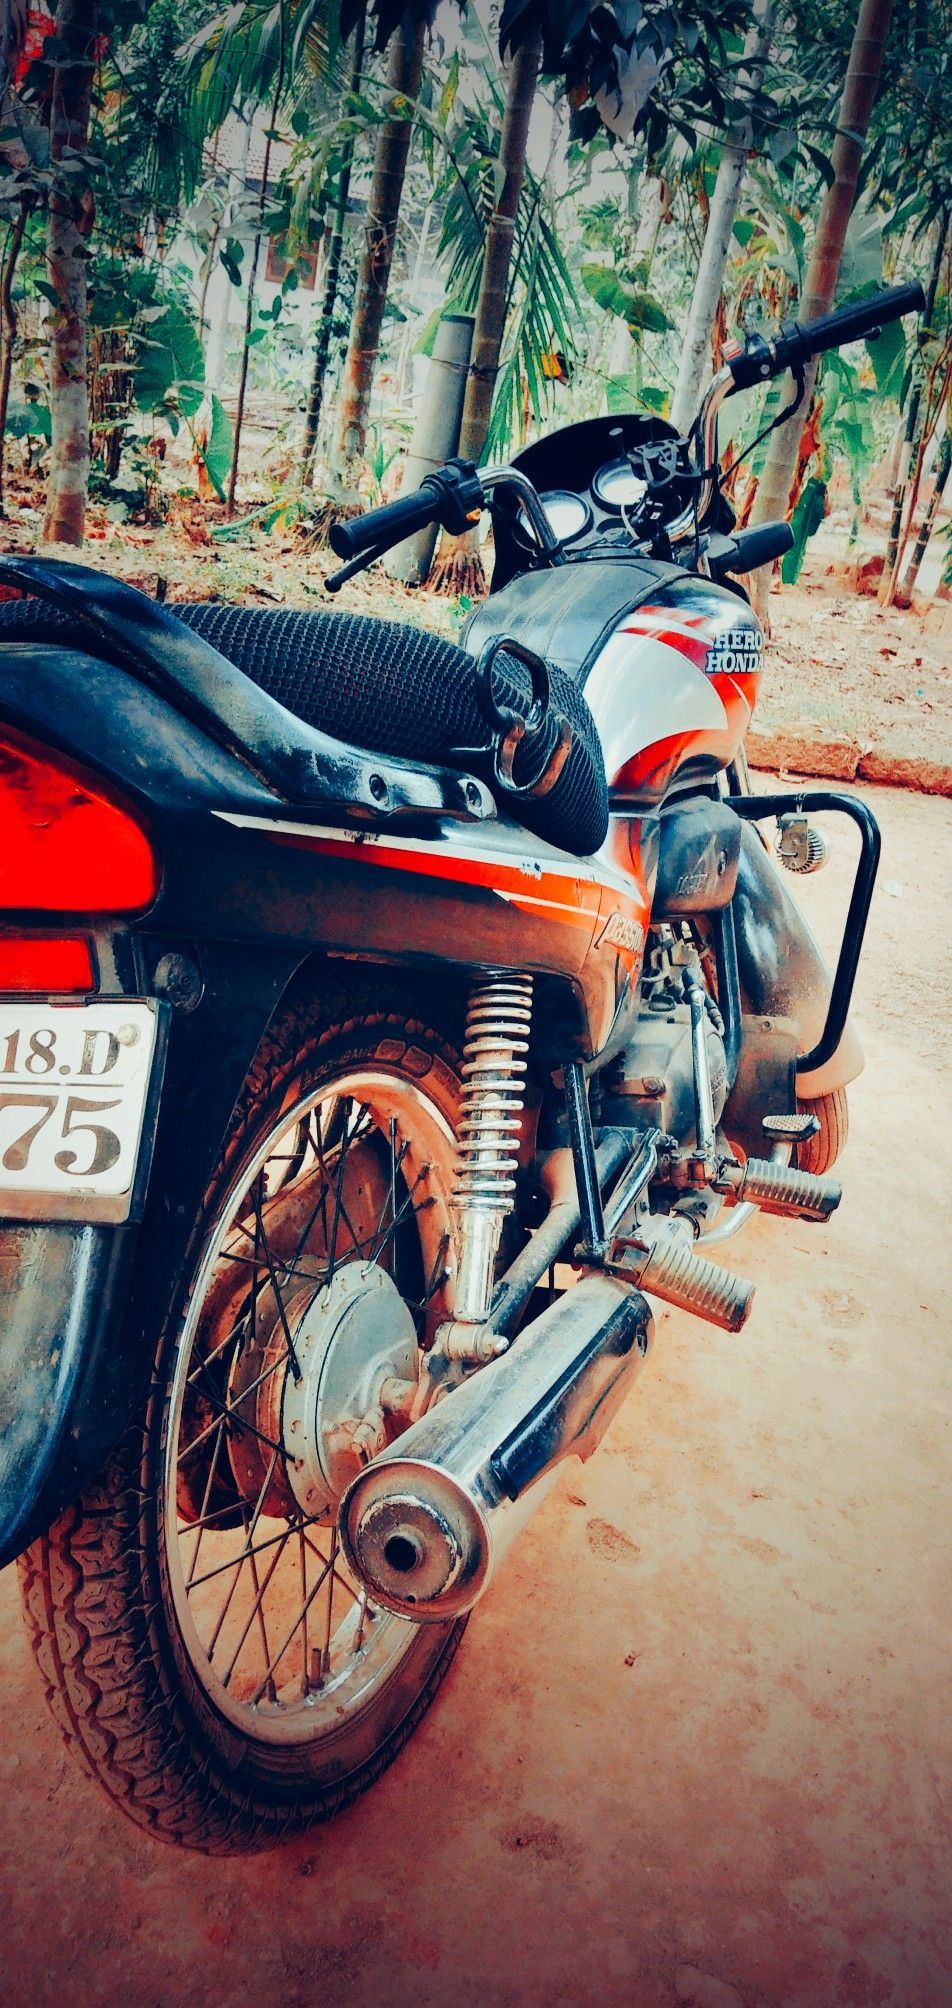 Vintage bike  kerala top old bike   hero honda passion plus